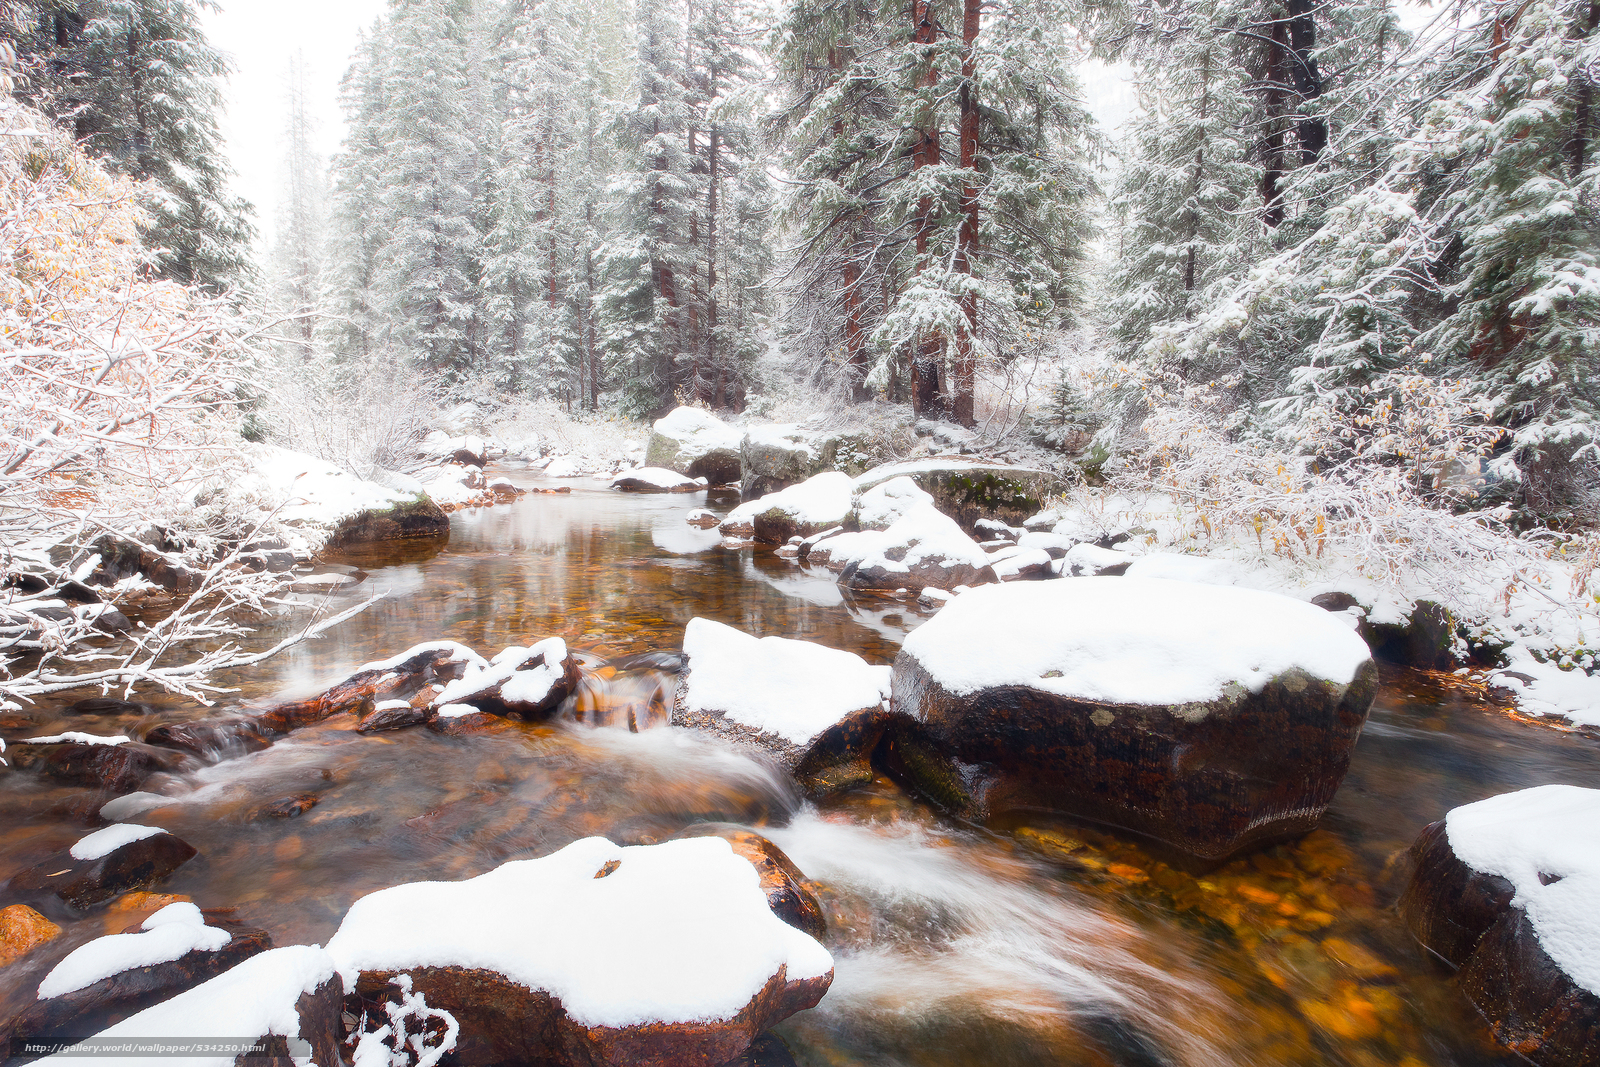 Download wallpaper winter has arrived for this creek - independence pass,  aspen,  colorado free desktop wallpaper in the resolution 3000x2000 — picture №534250